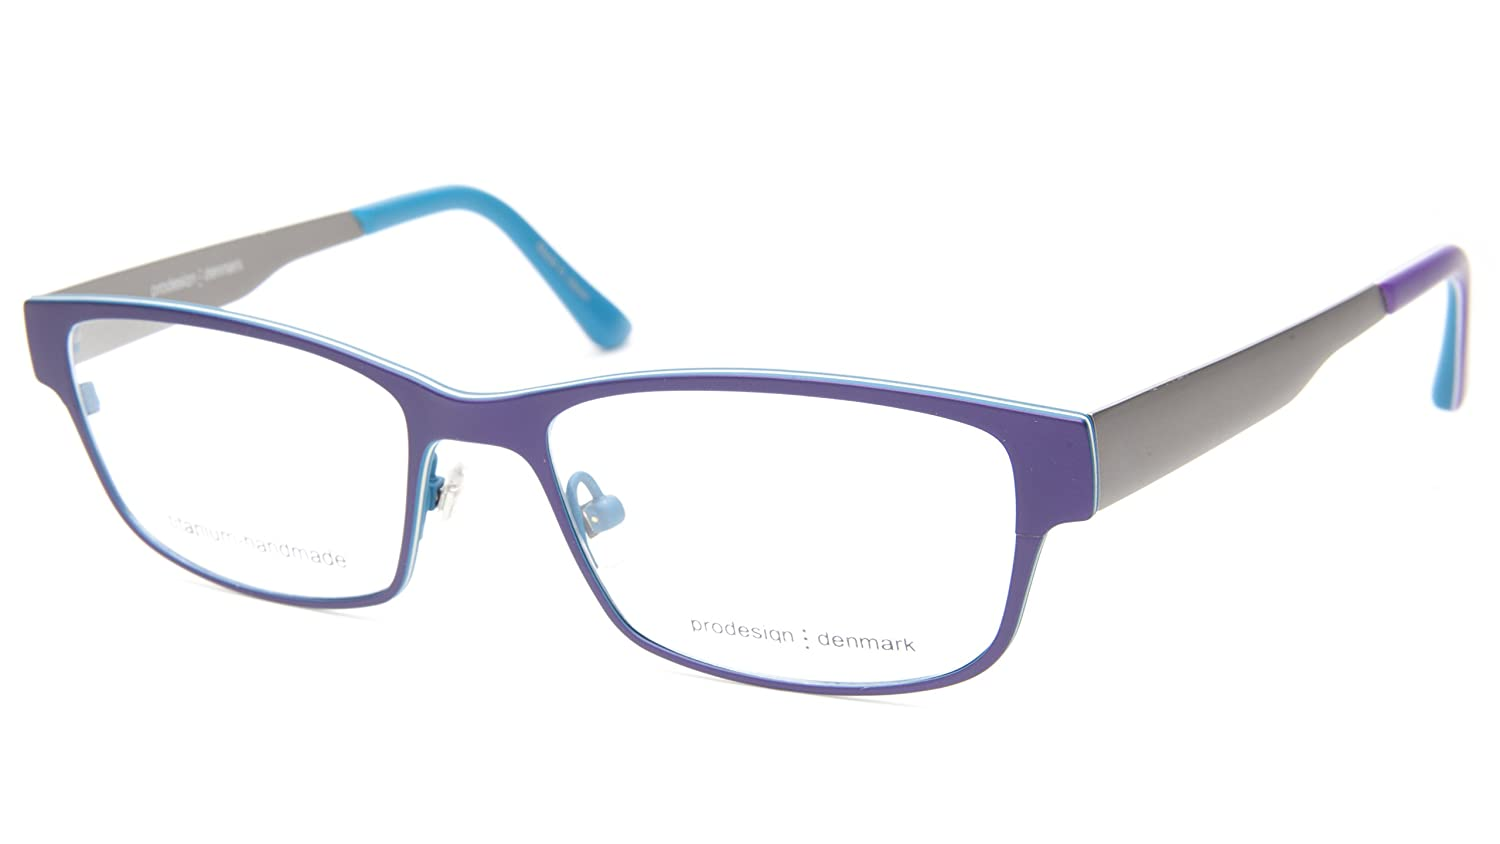 521407ca78a Amazon.com  NEW PRODESIGN DENMARK 1394 c.3021 LILAC EYEGLASSES GLASSES  FRAME 52-17-140 LF B33mm K10-4 Japan + Case  Clothing